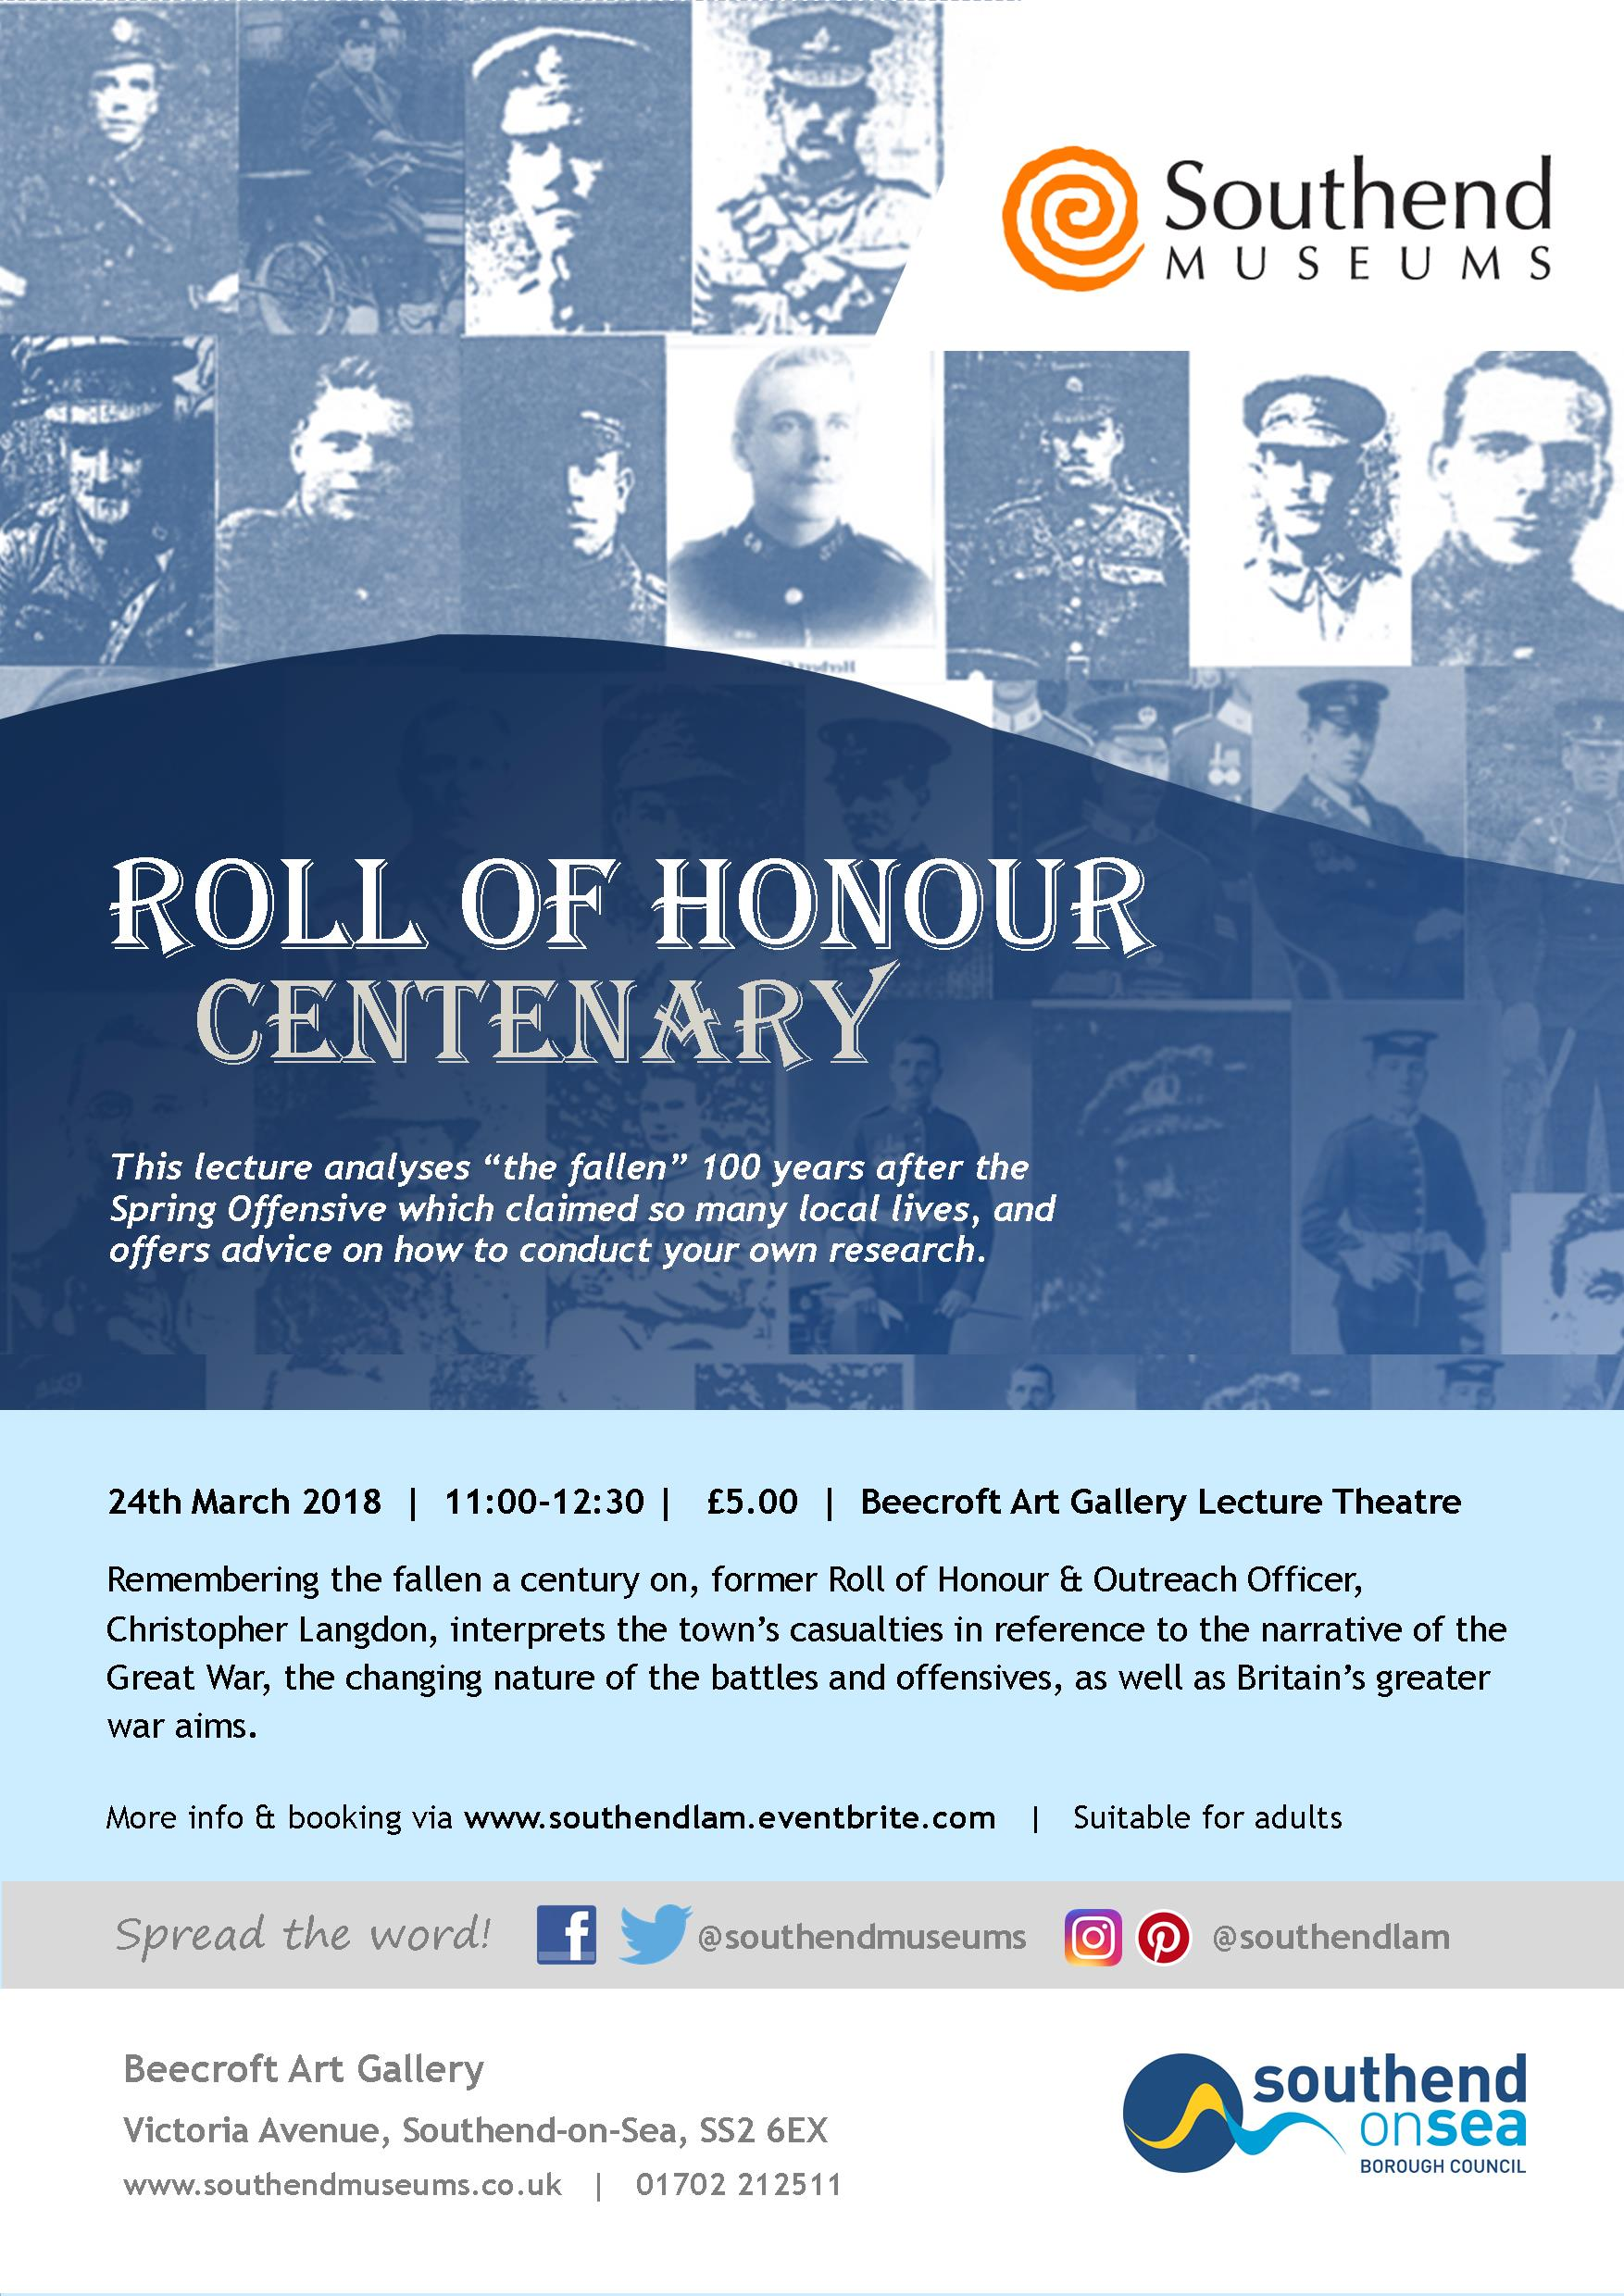 Roll of Honour Centenary